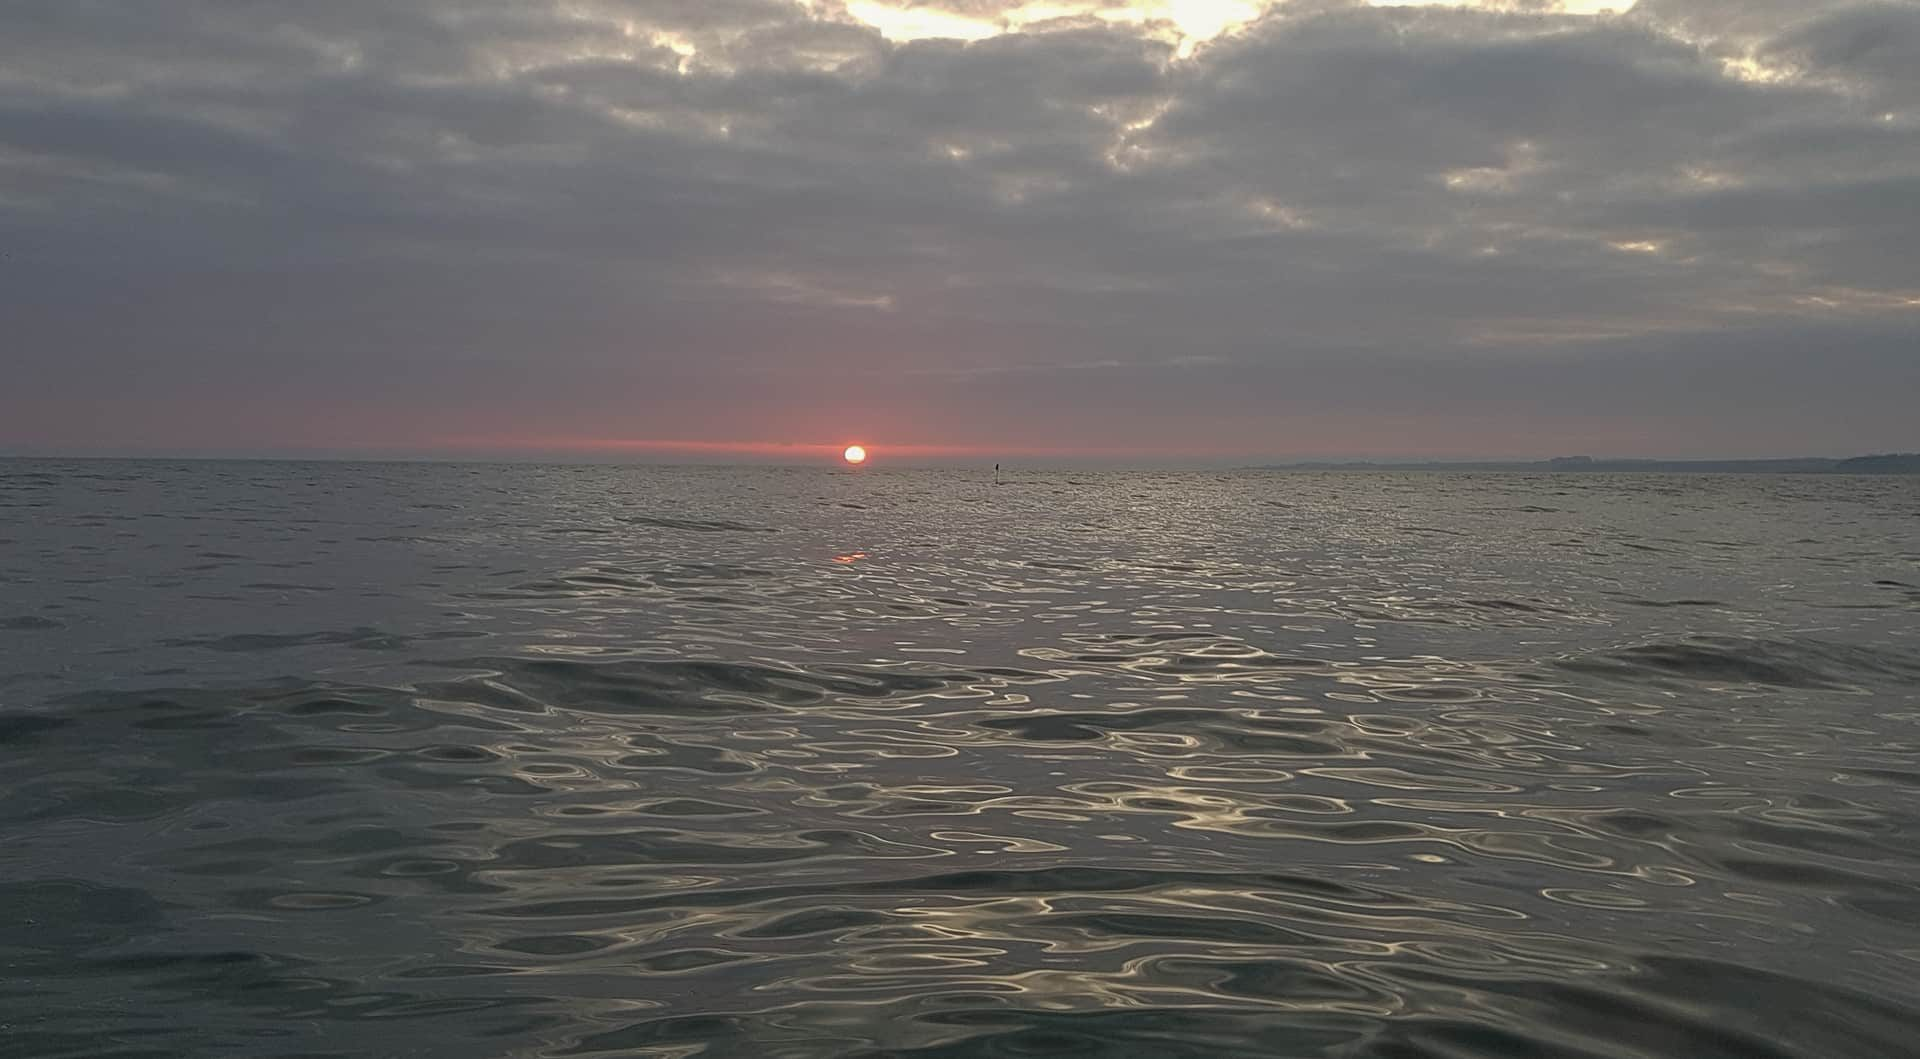 The sun rises over a placid North Sea as we leave St Andrews harbour in mid-November